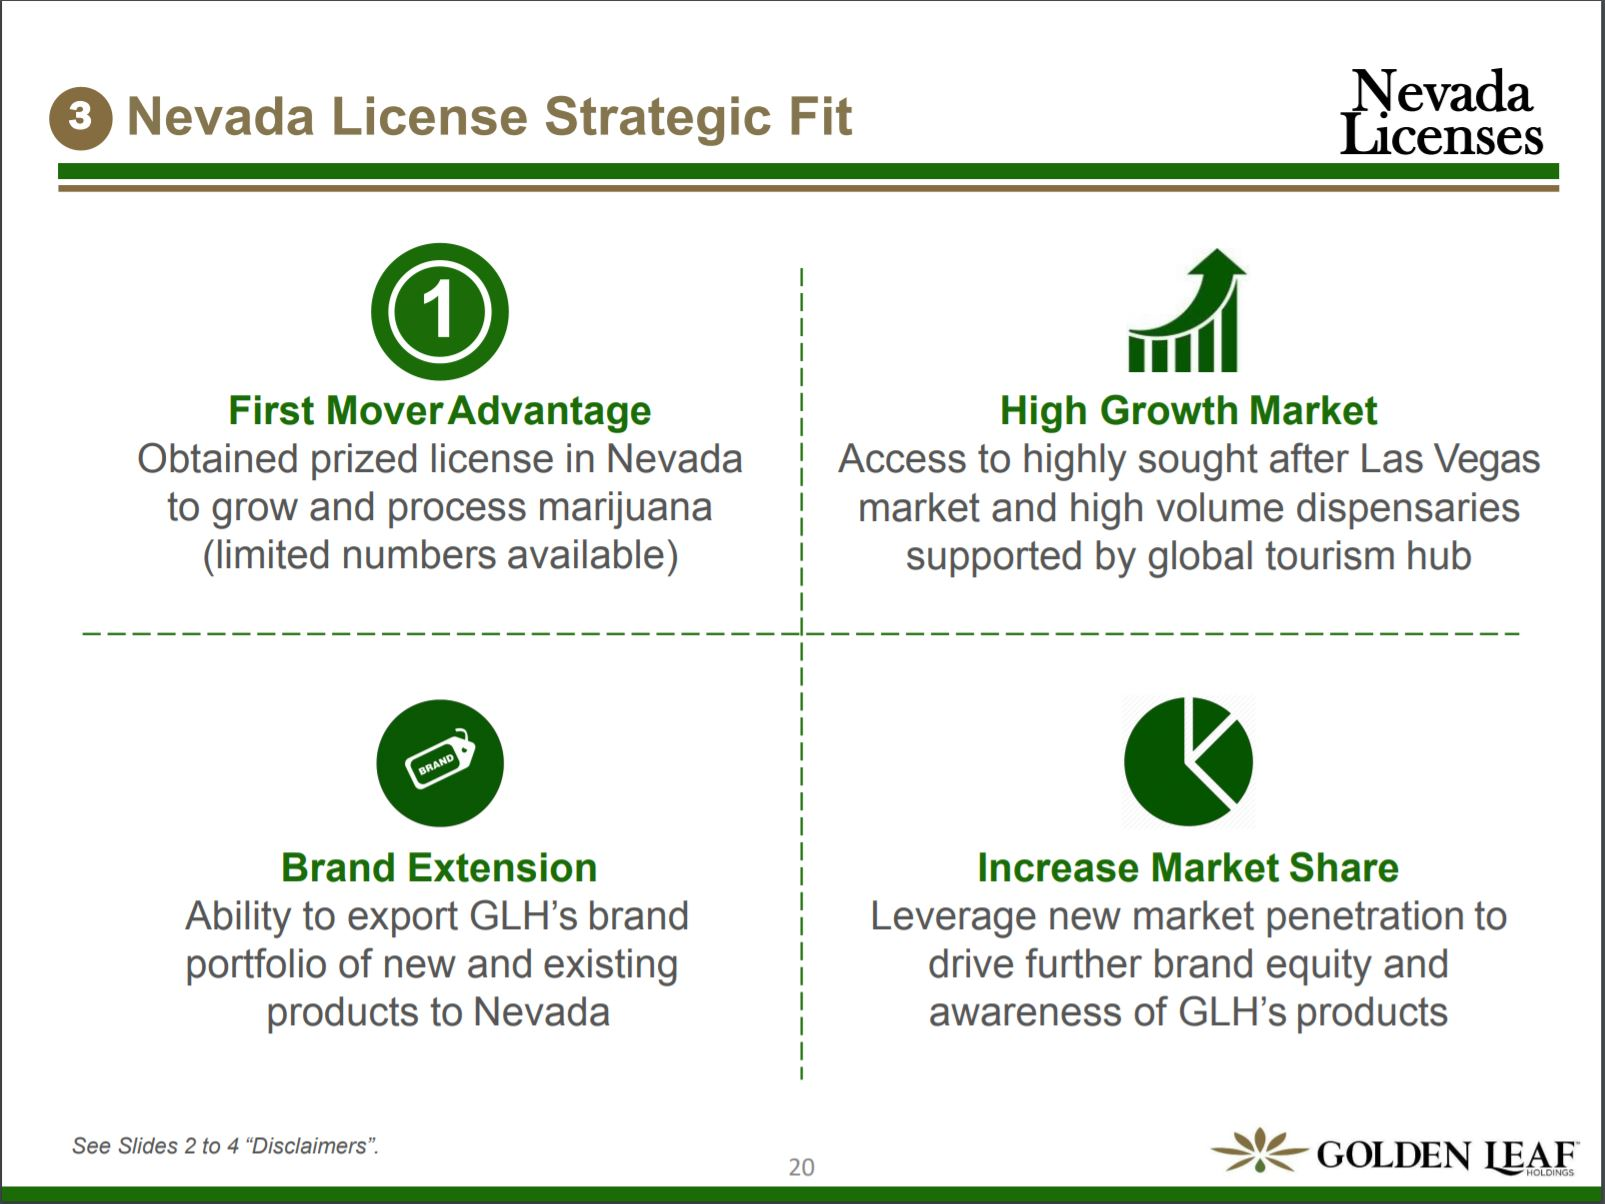 Slide 24 from Golden leaf's investor deck detailing the reasons for its Nevada expansion.